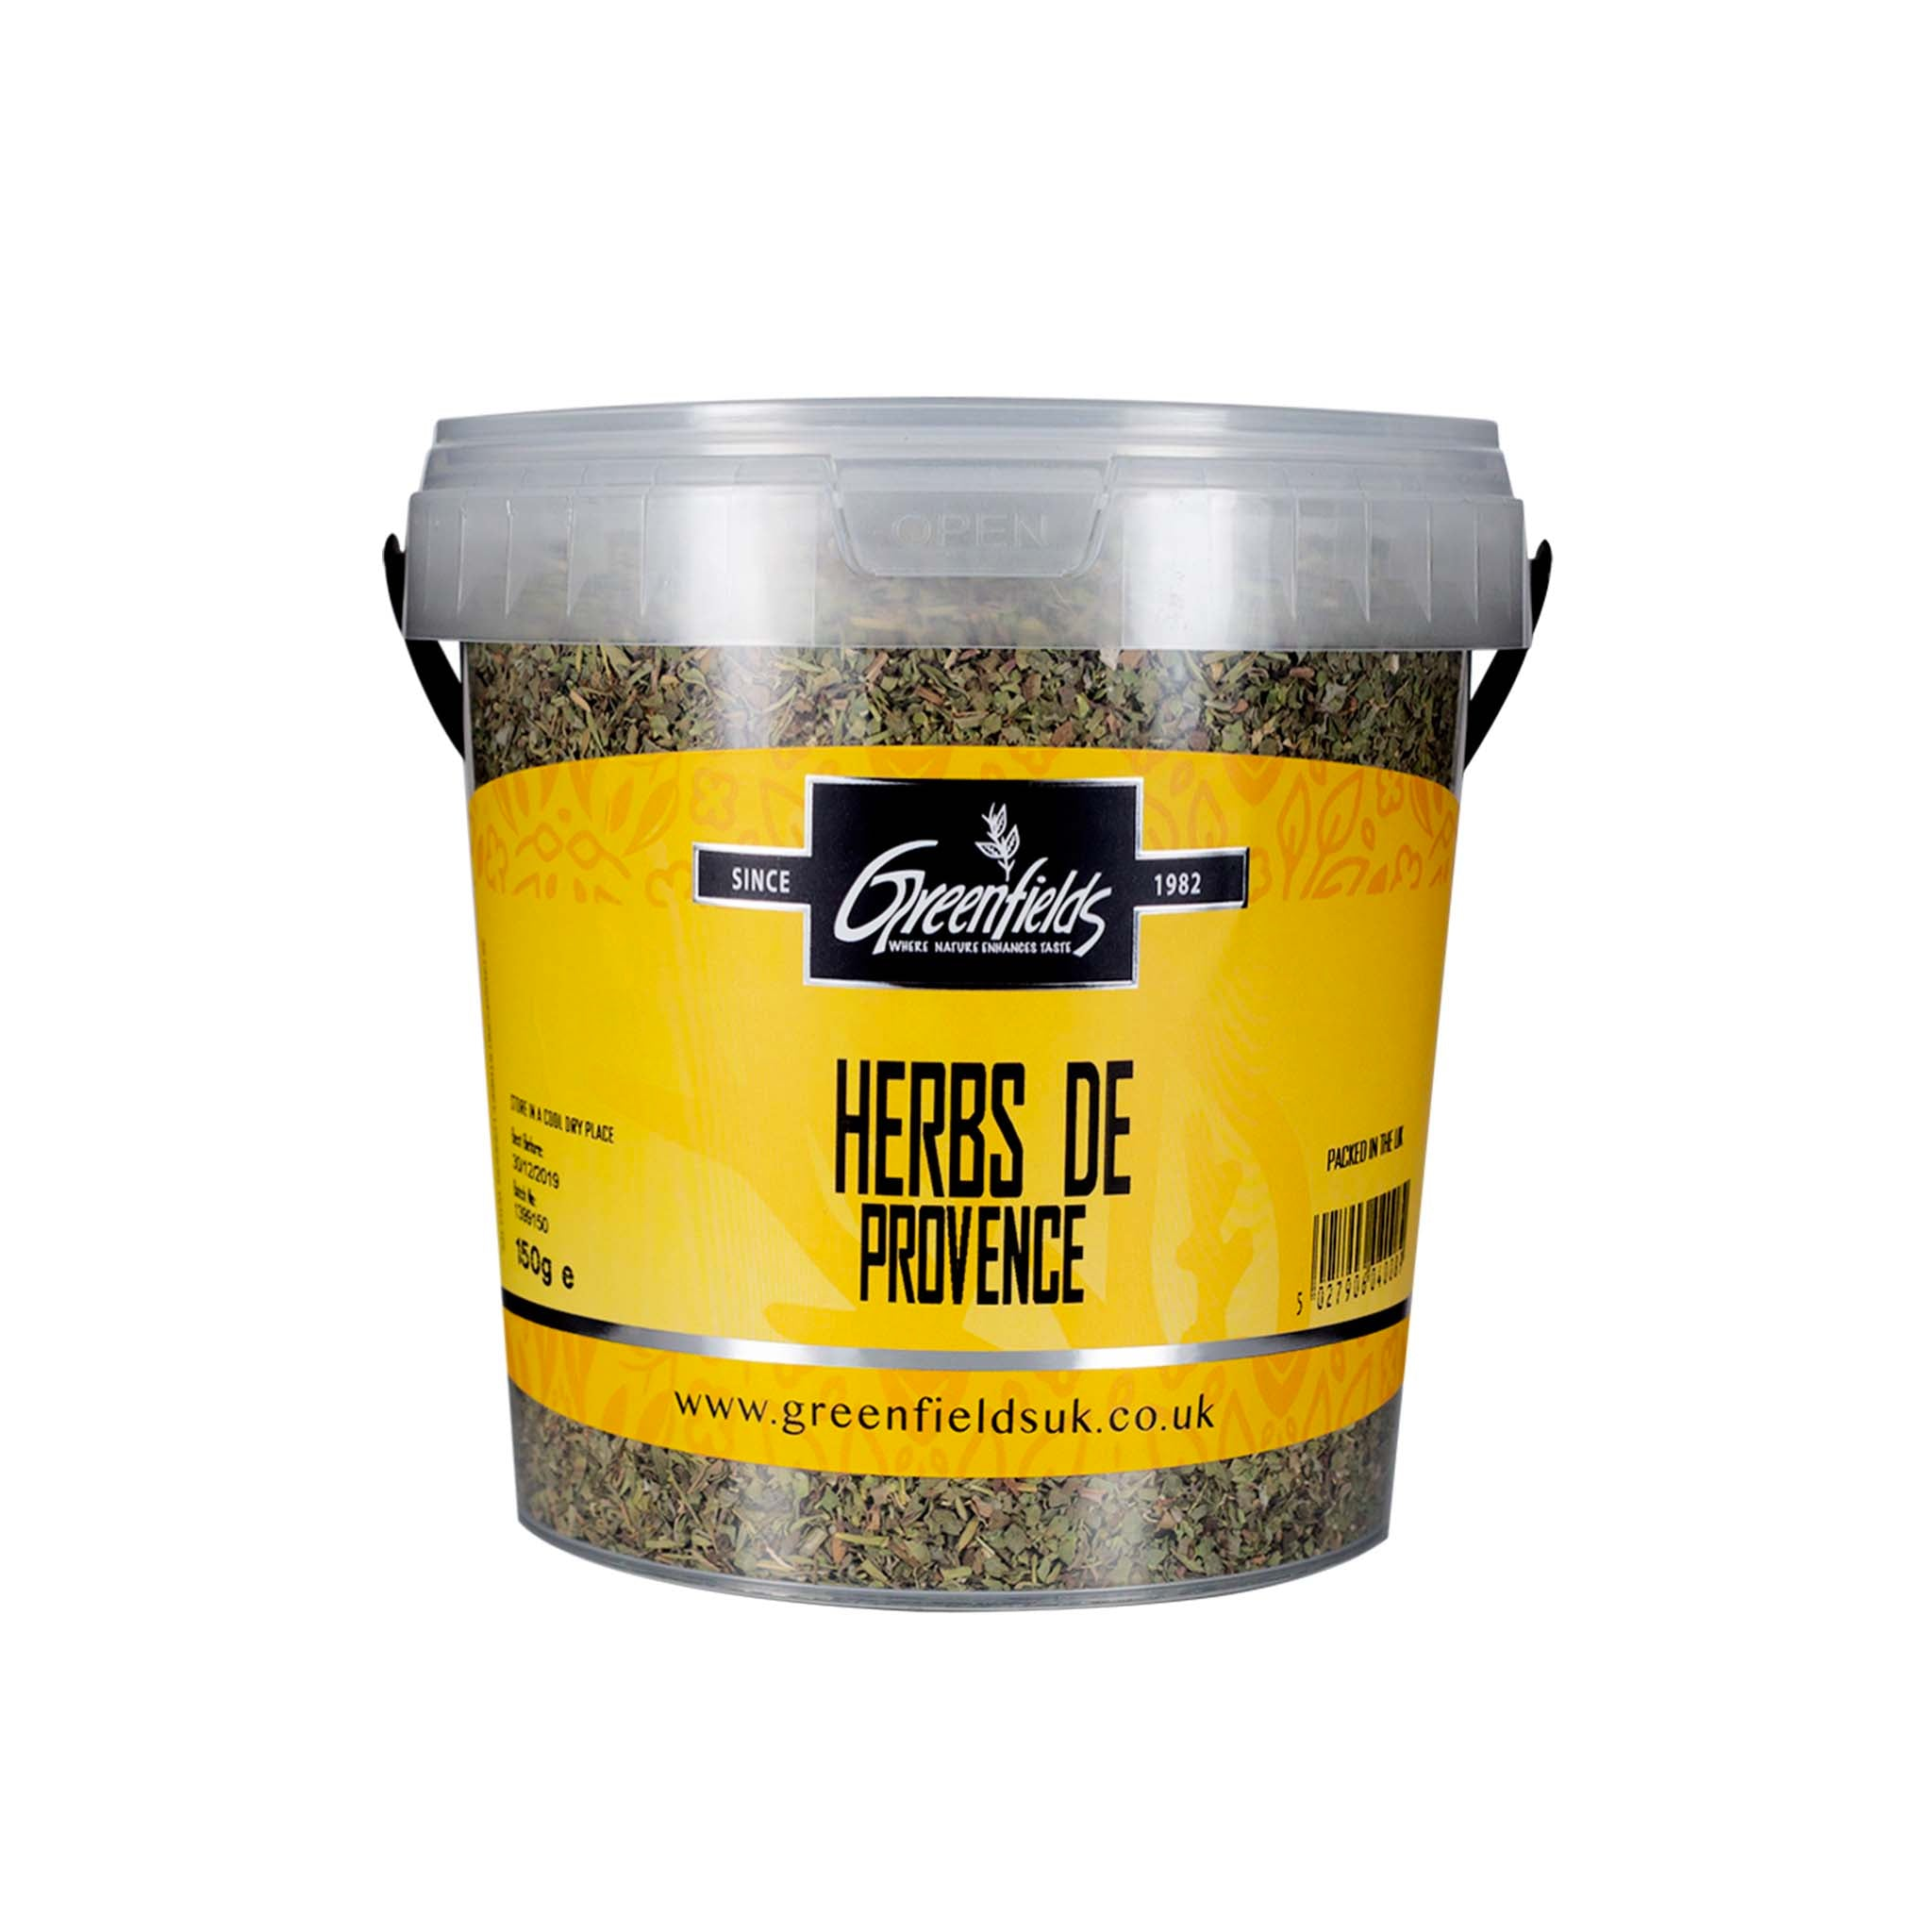 Greenfields Herbs De Provence Catering Size Ingredients Herbs & Spices Catering Size Herbs & Spices